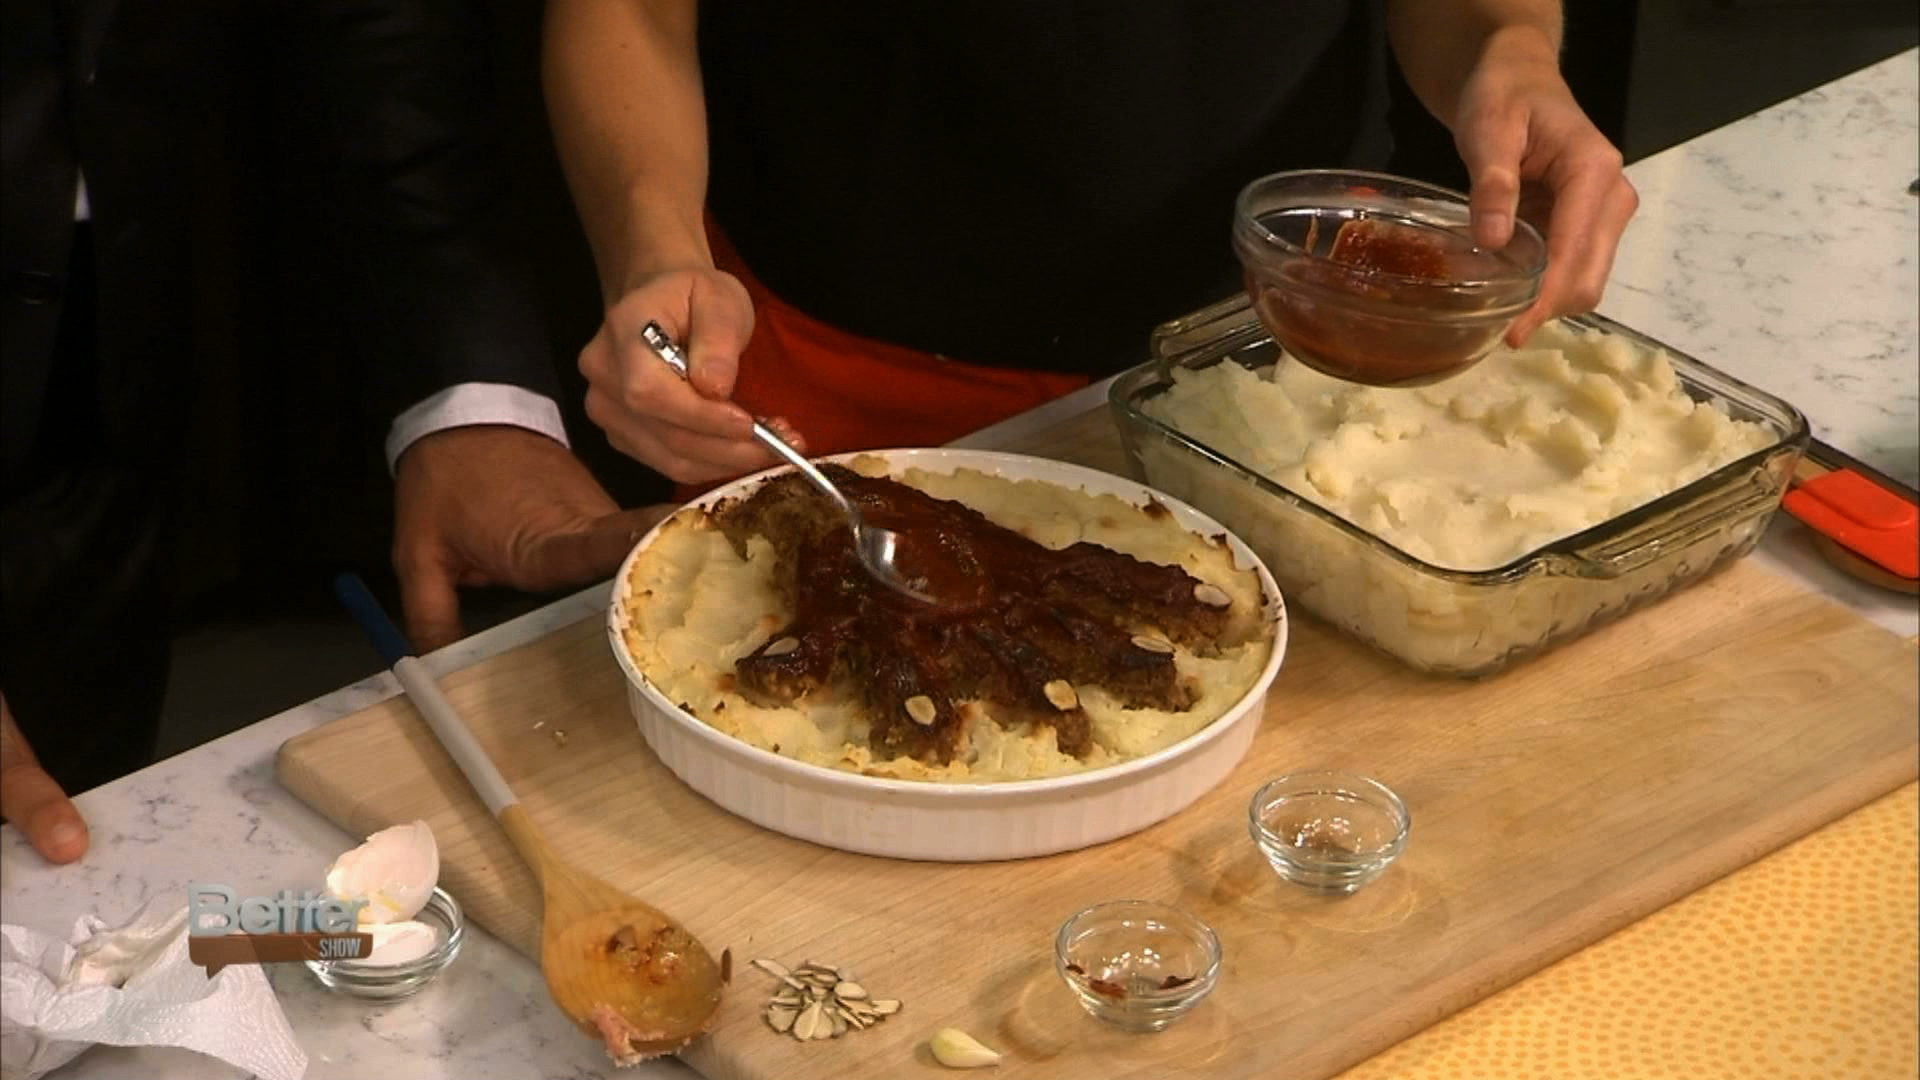 How to Make a Hand-Some Halloween Meatloaf